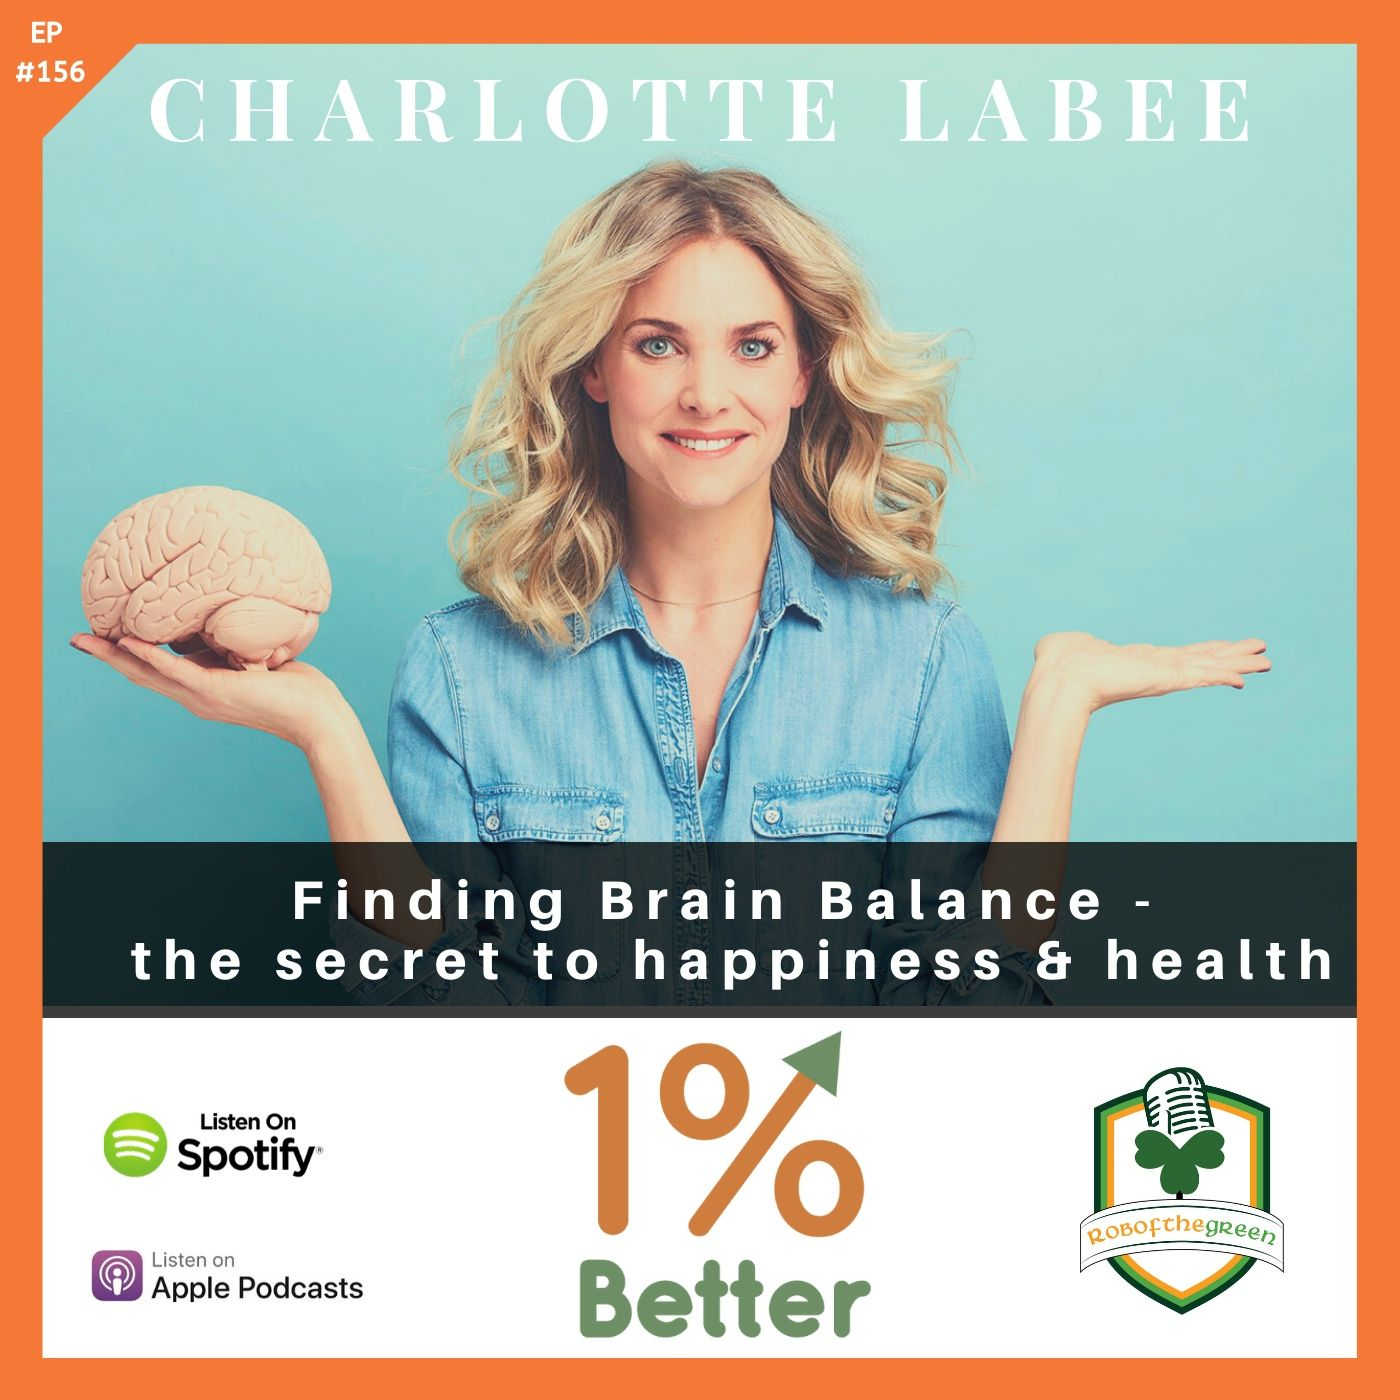 Charlotte Labee - Finding Brain Balance - EP156!